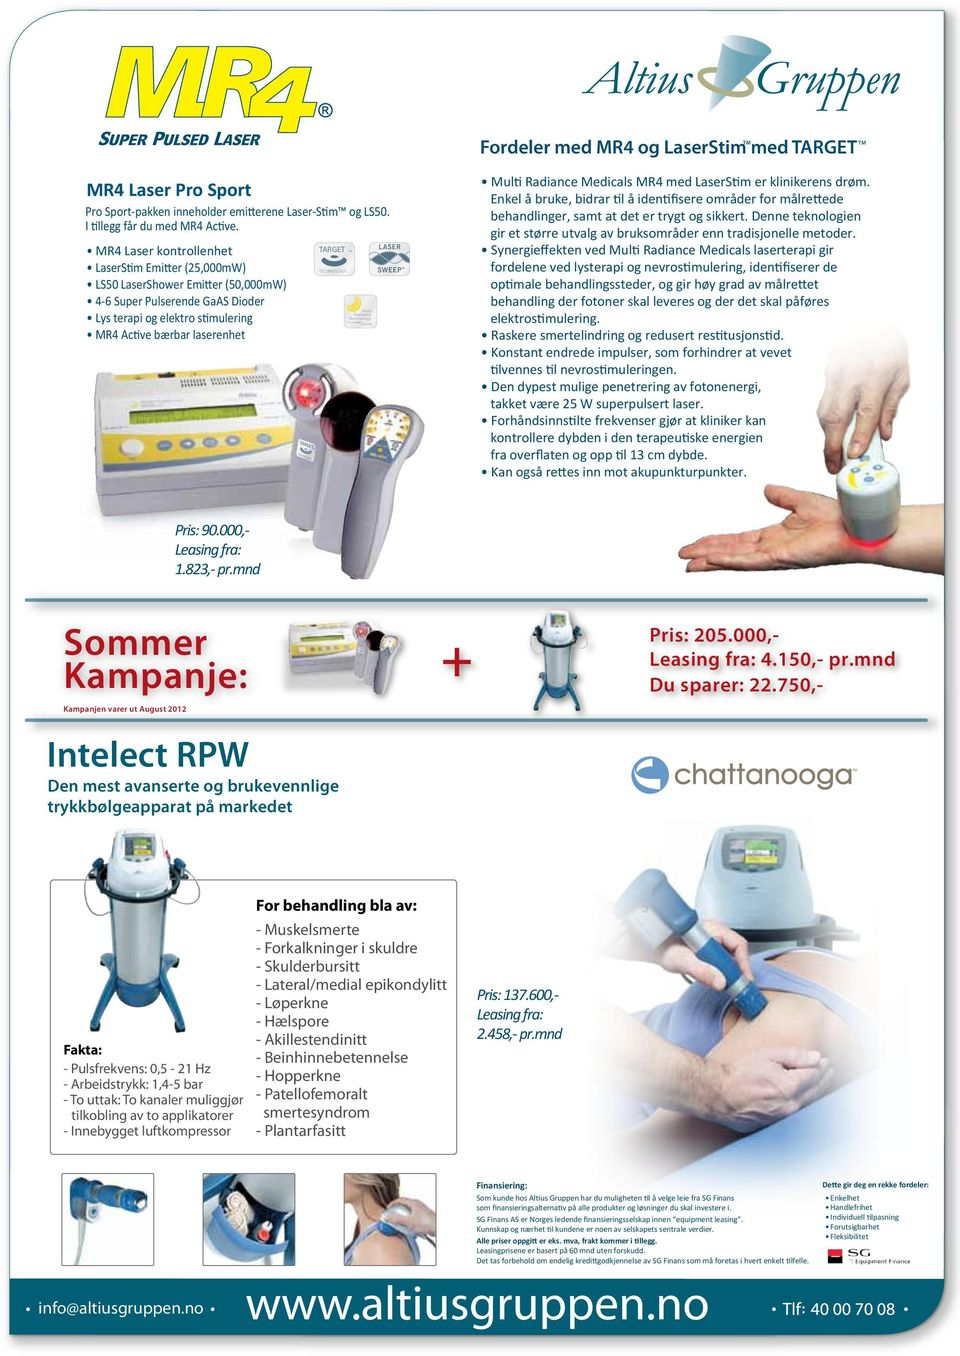 TECHNOLOGY Multi Radiance Technology inside Multi Radiance Medicals MR4 med LaserStim er klinikerens drøm.